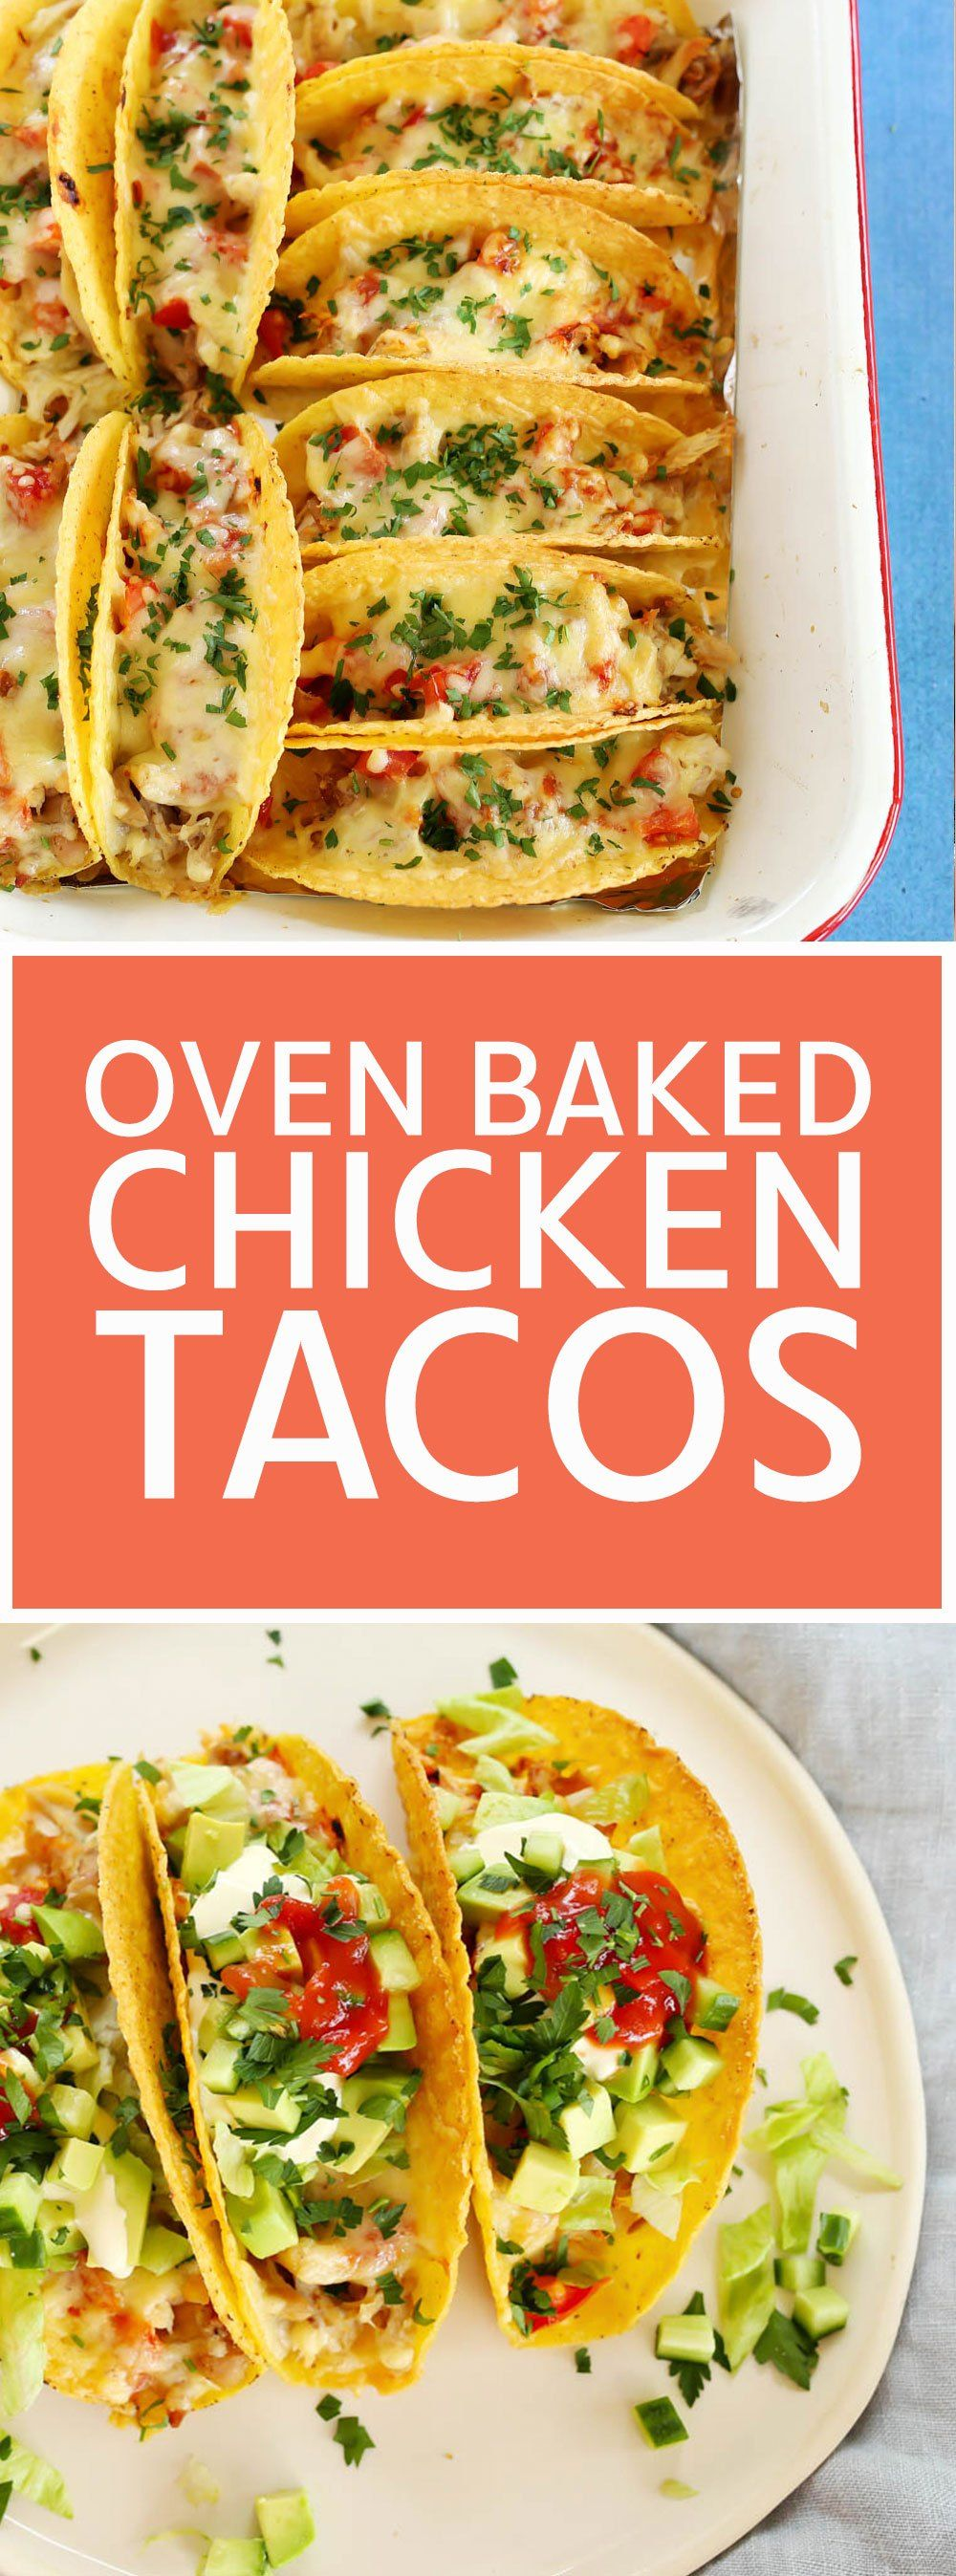 Oven Baked Chicken Tacos using leftover chicken | Kids Eat by Shanai